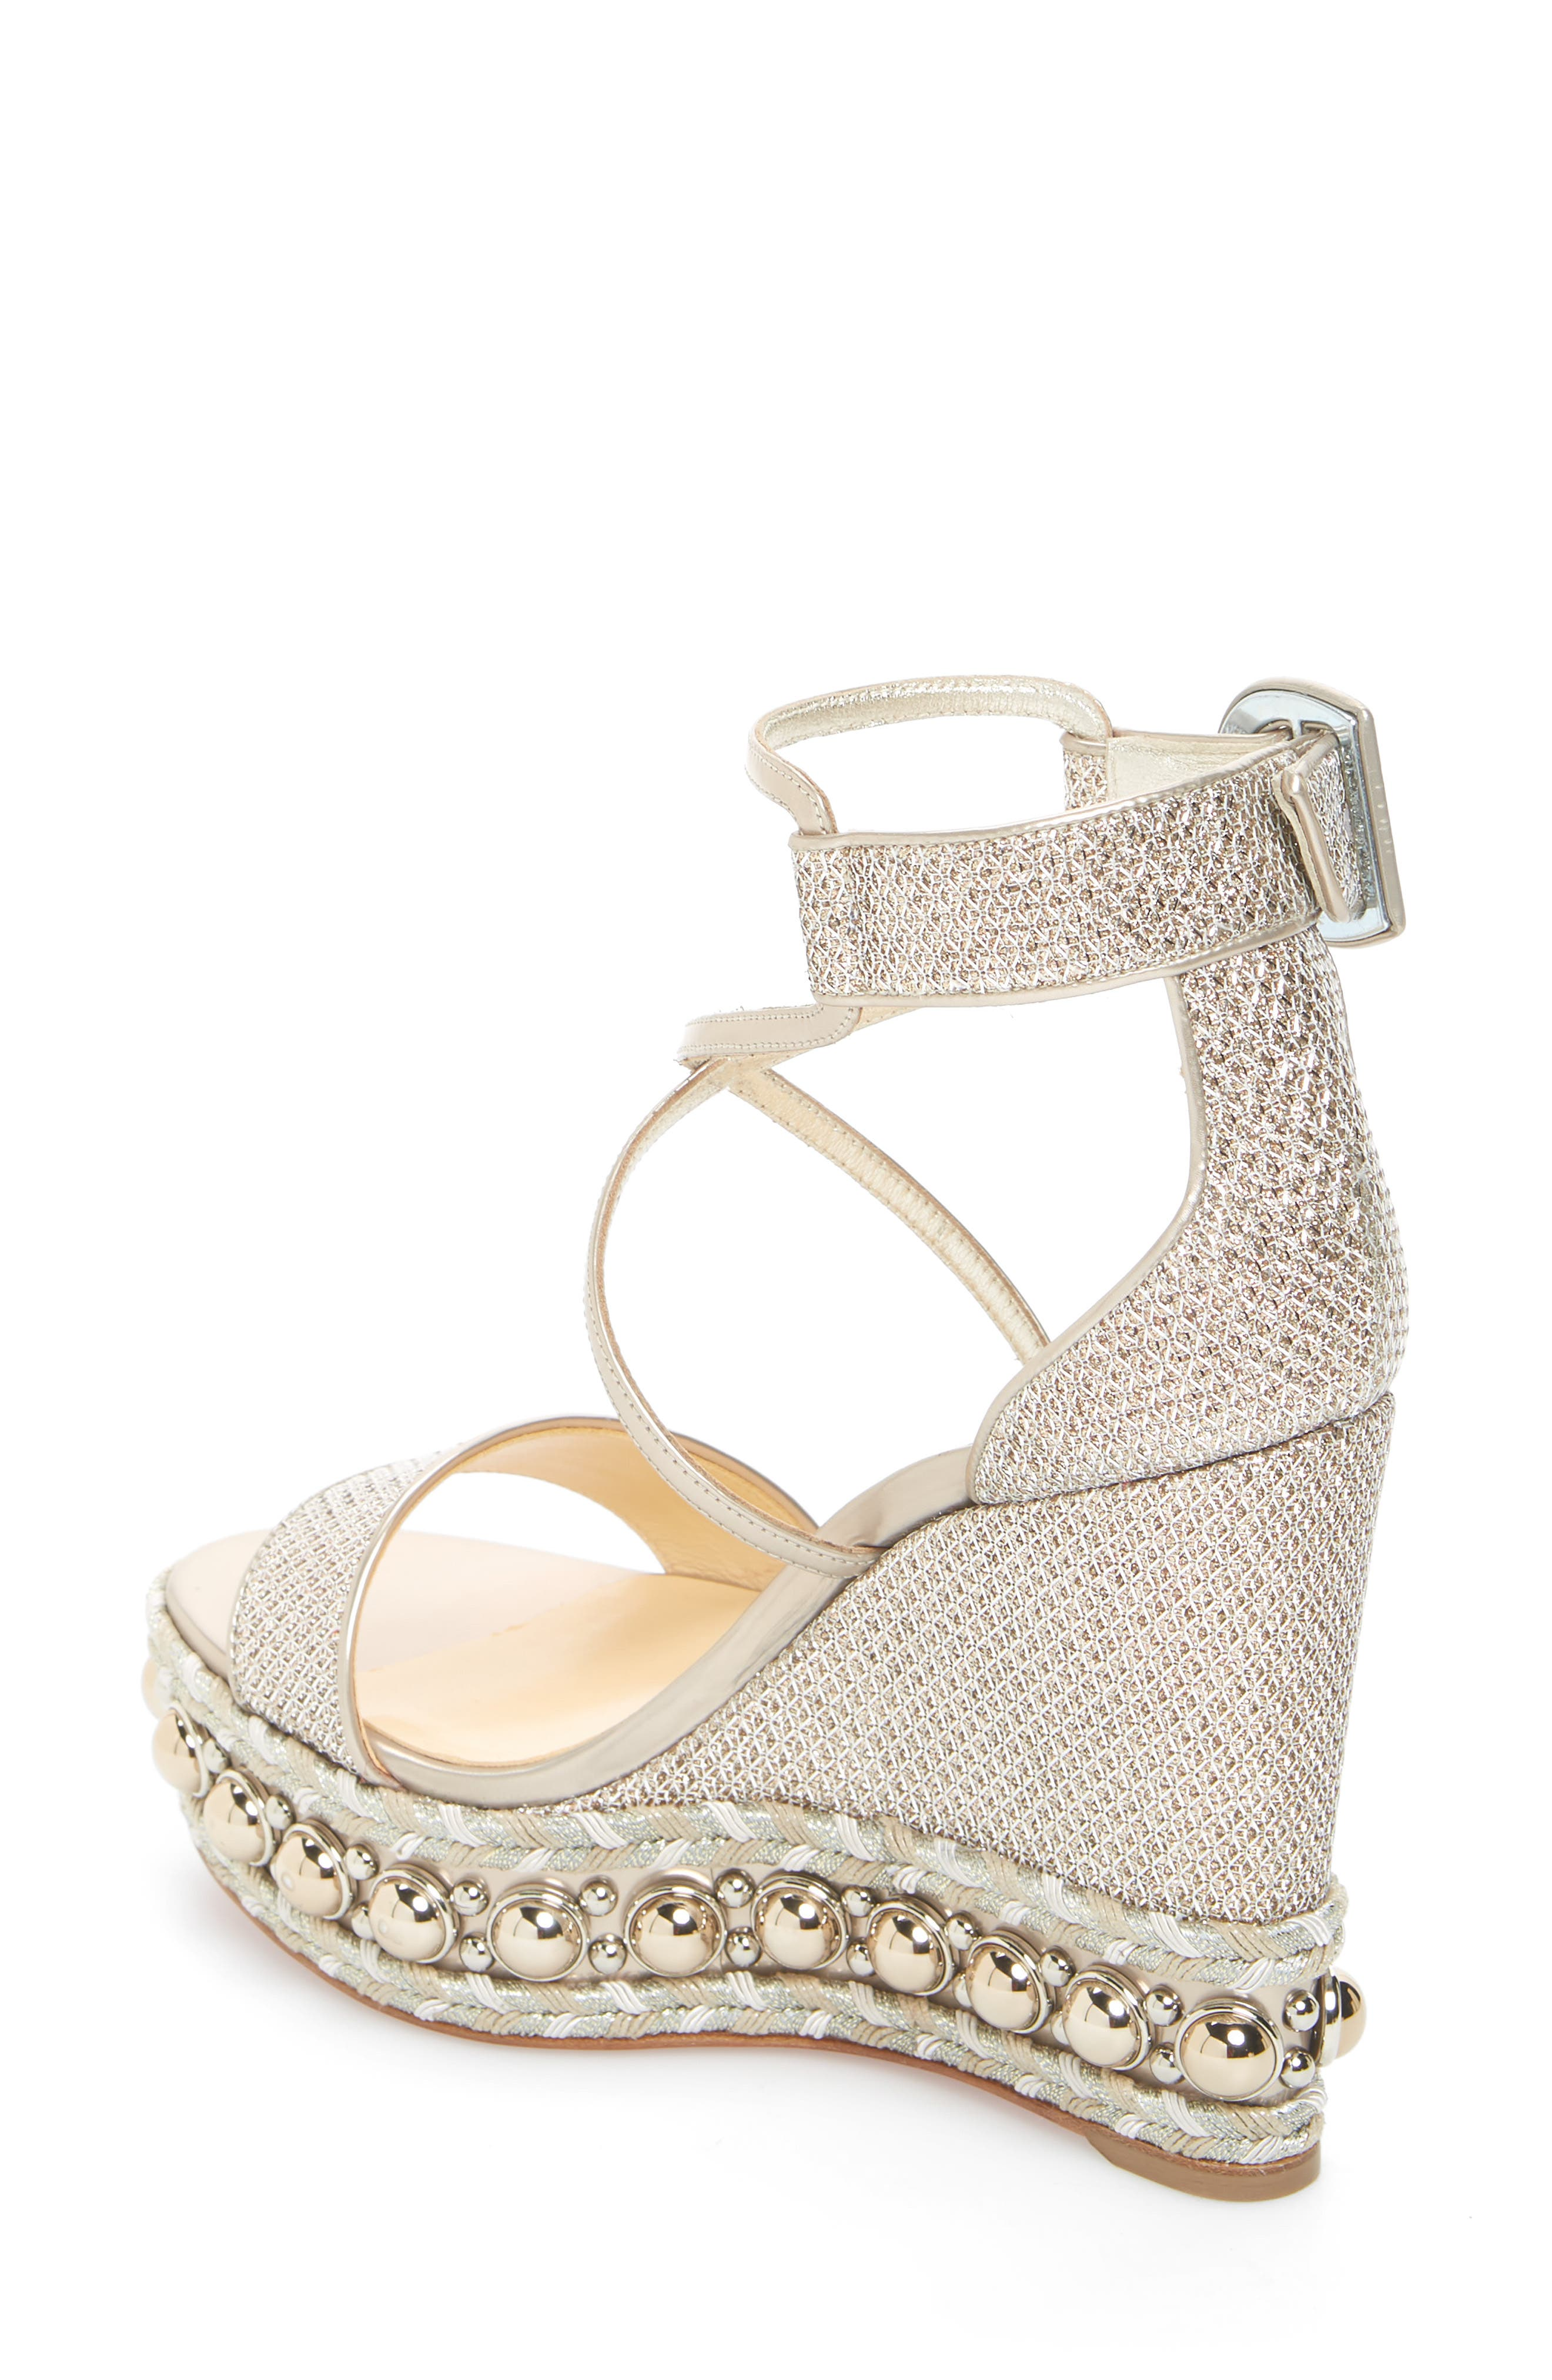 Chocazeppa Studded Wedge,                             Alternate thumbnail 2, color,                             COLOMBE